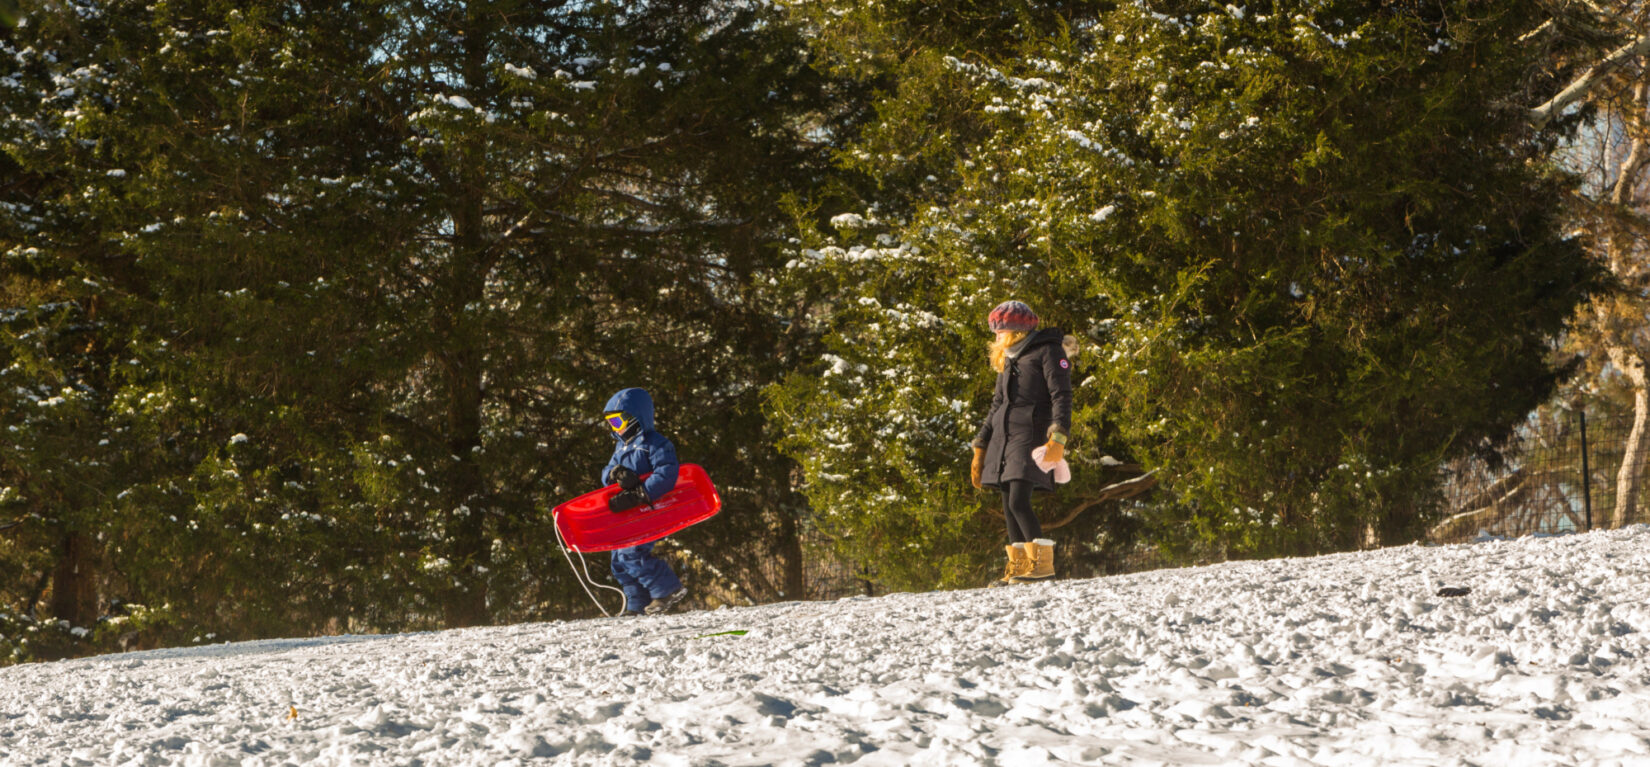 A child dressed for cold weather carries a red sled at the top of a snowy hill